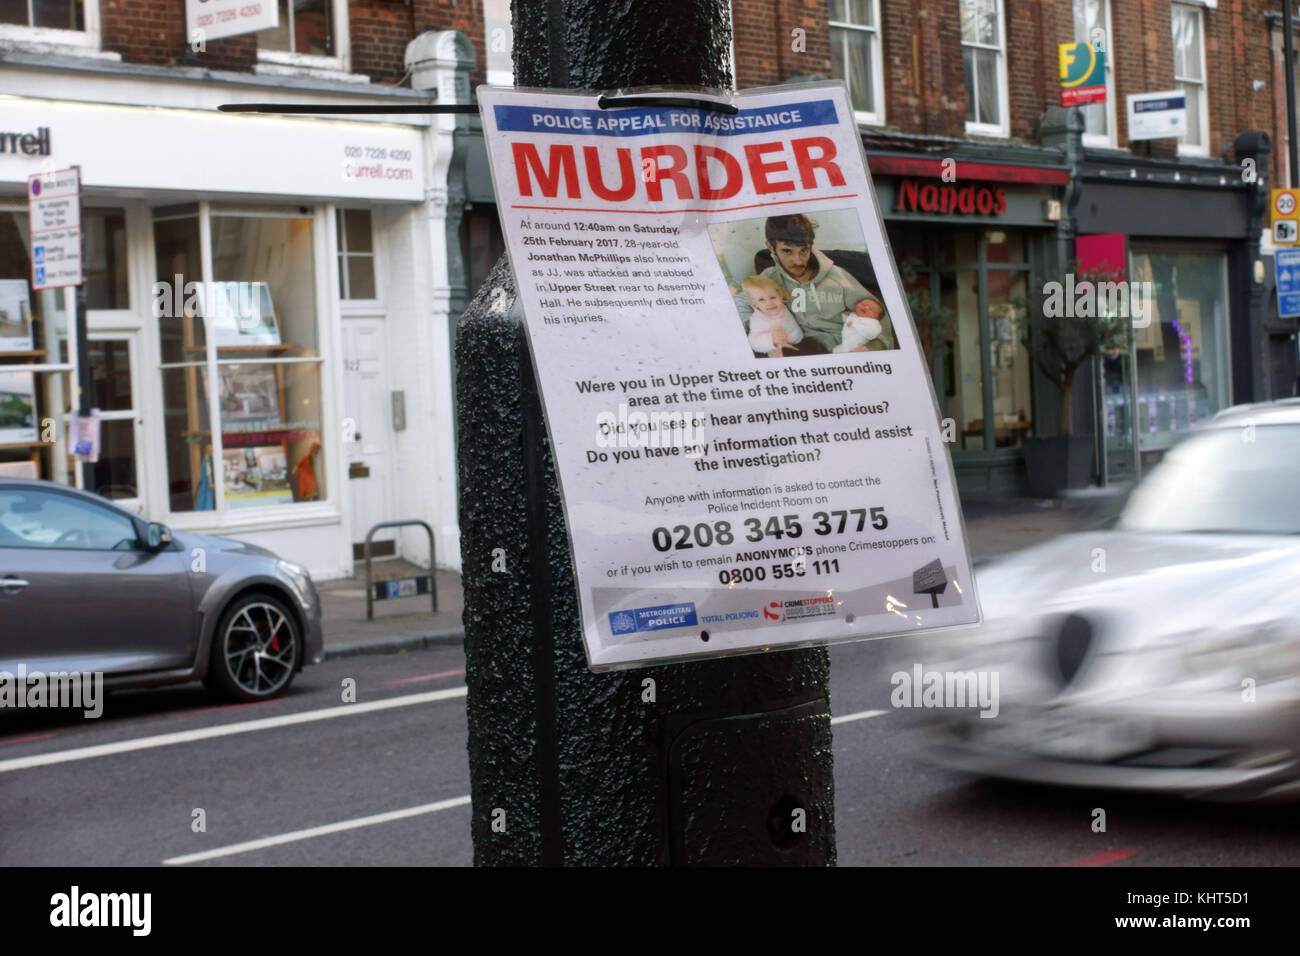 Metropolitan Police appeal for help with murder investigation in Islington, London - Stock Image